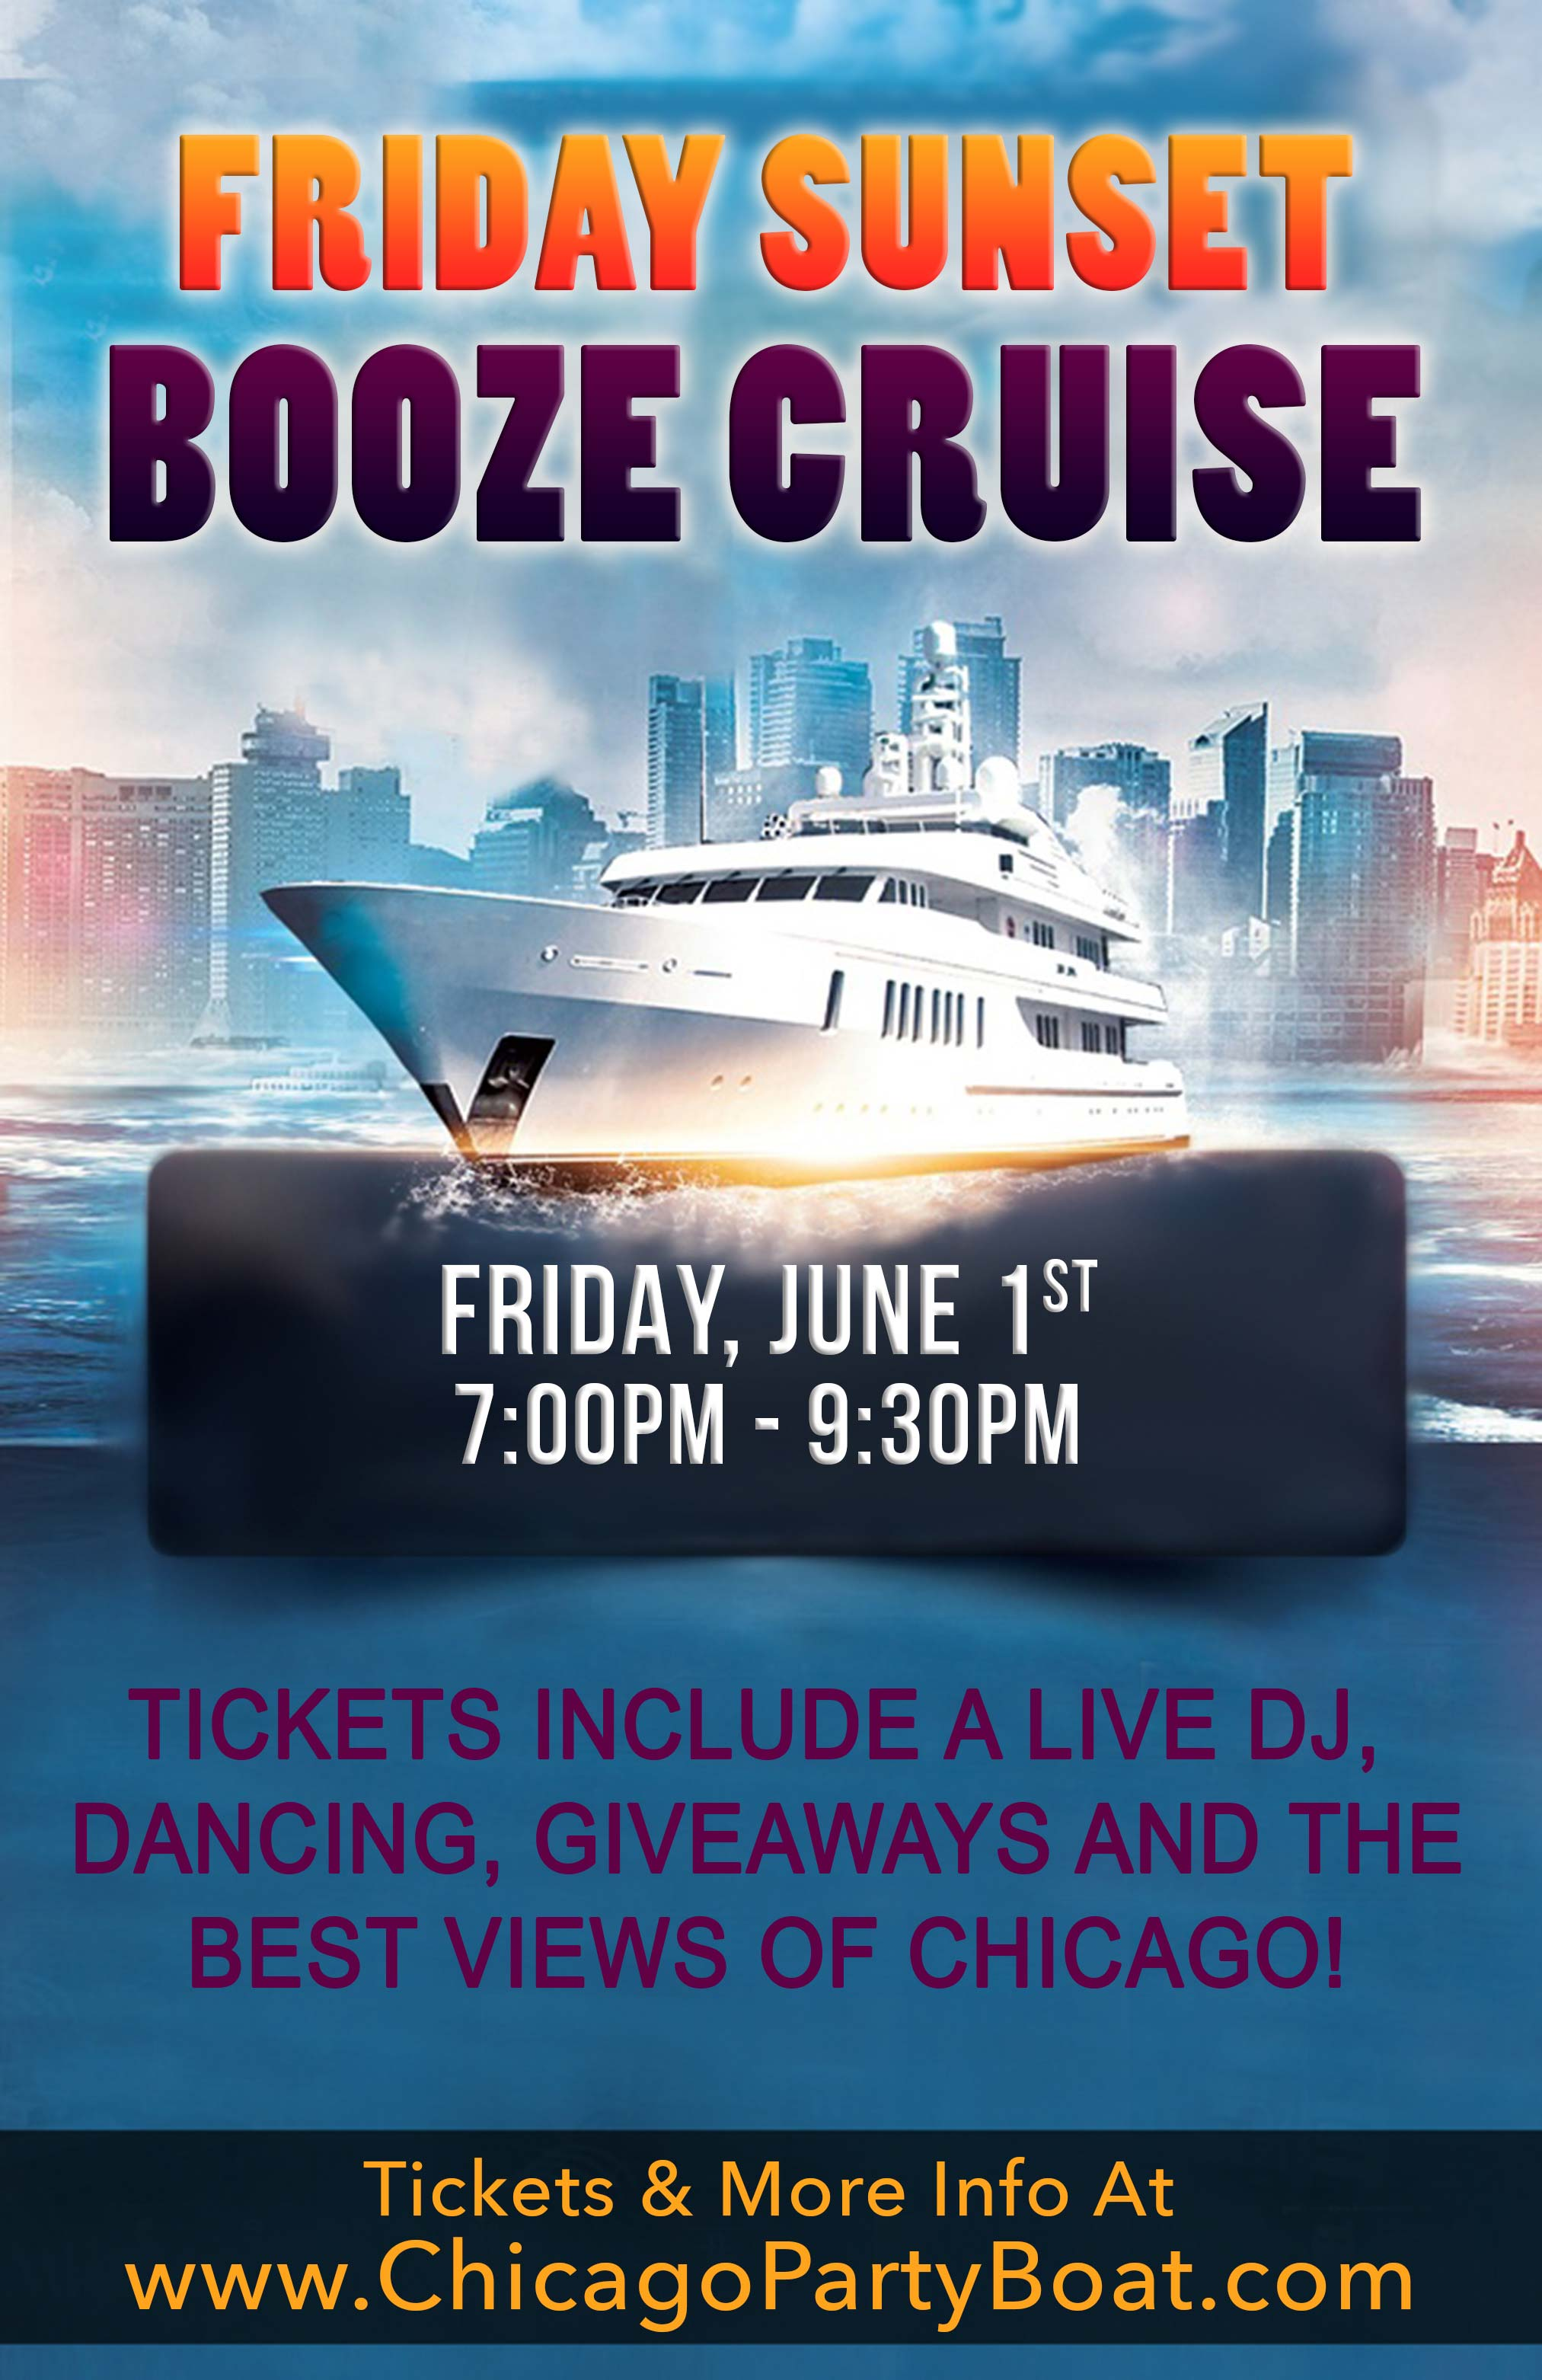 Friday Sunset Booze Cruise Party - Tickets include a Live DJ, Dancing, Giveaways, and the best views of Chicago!